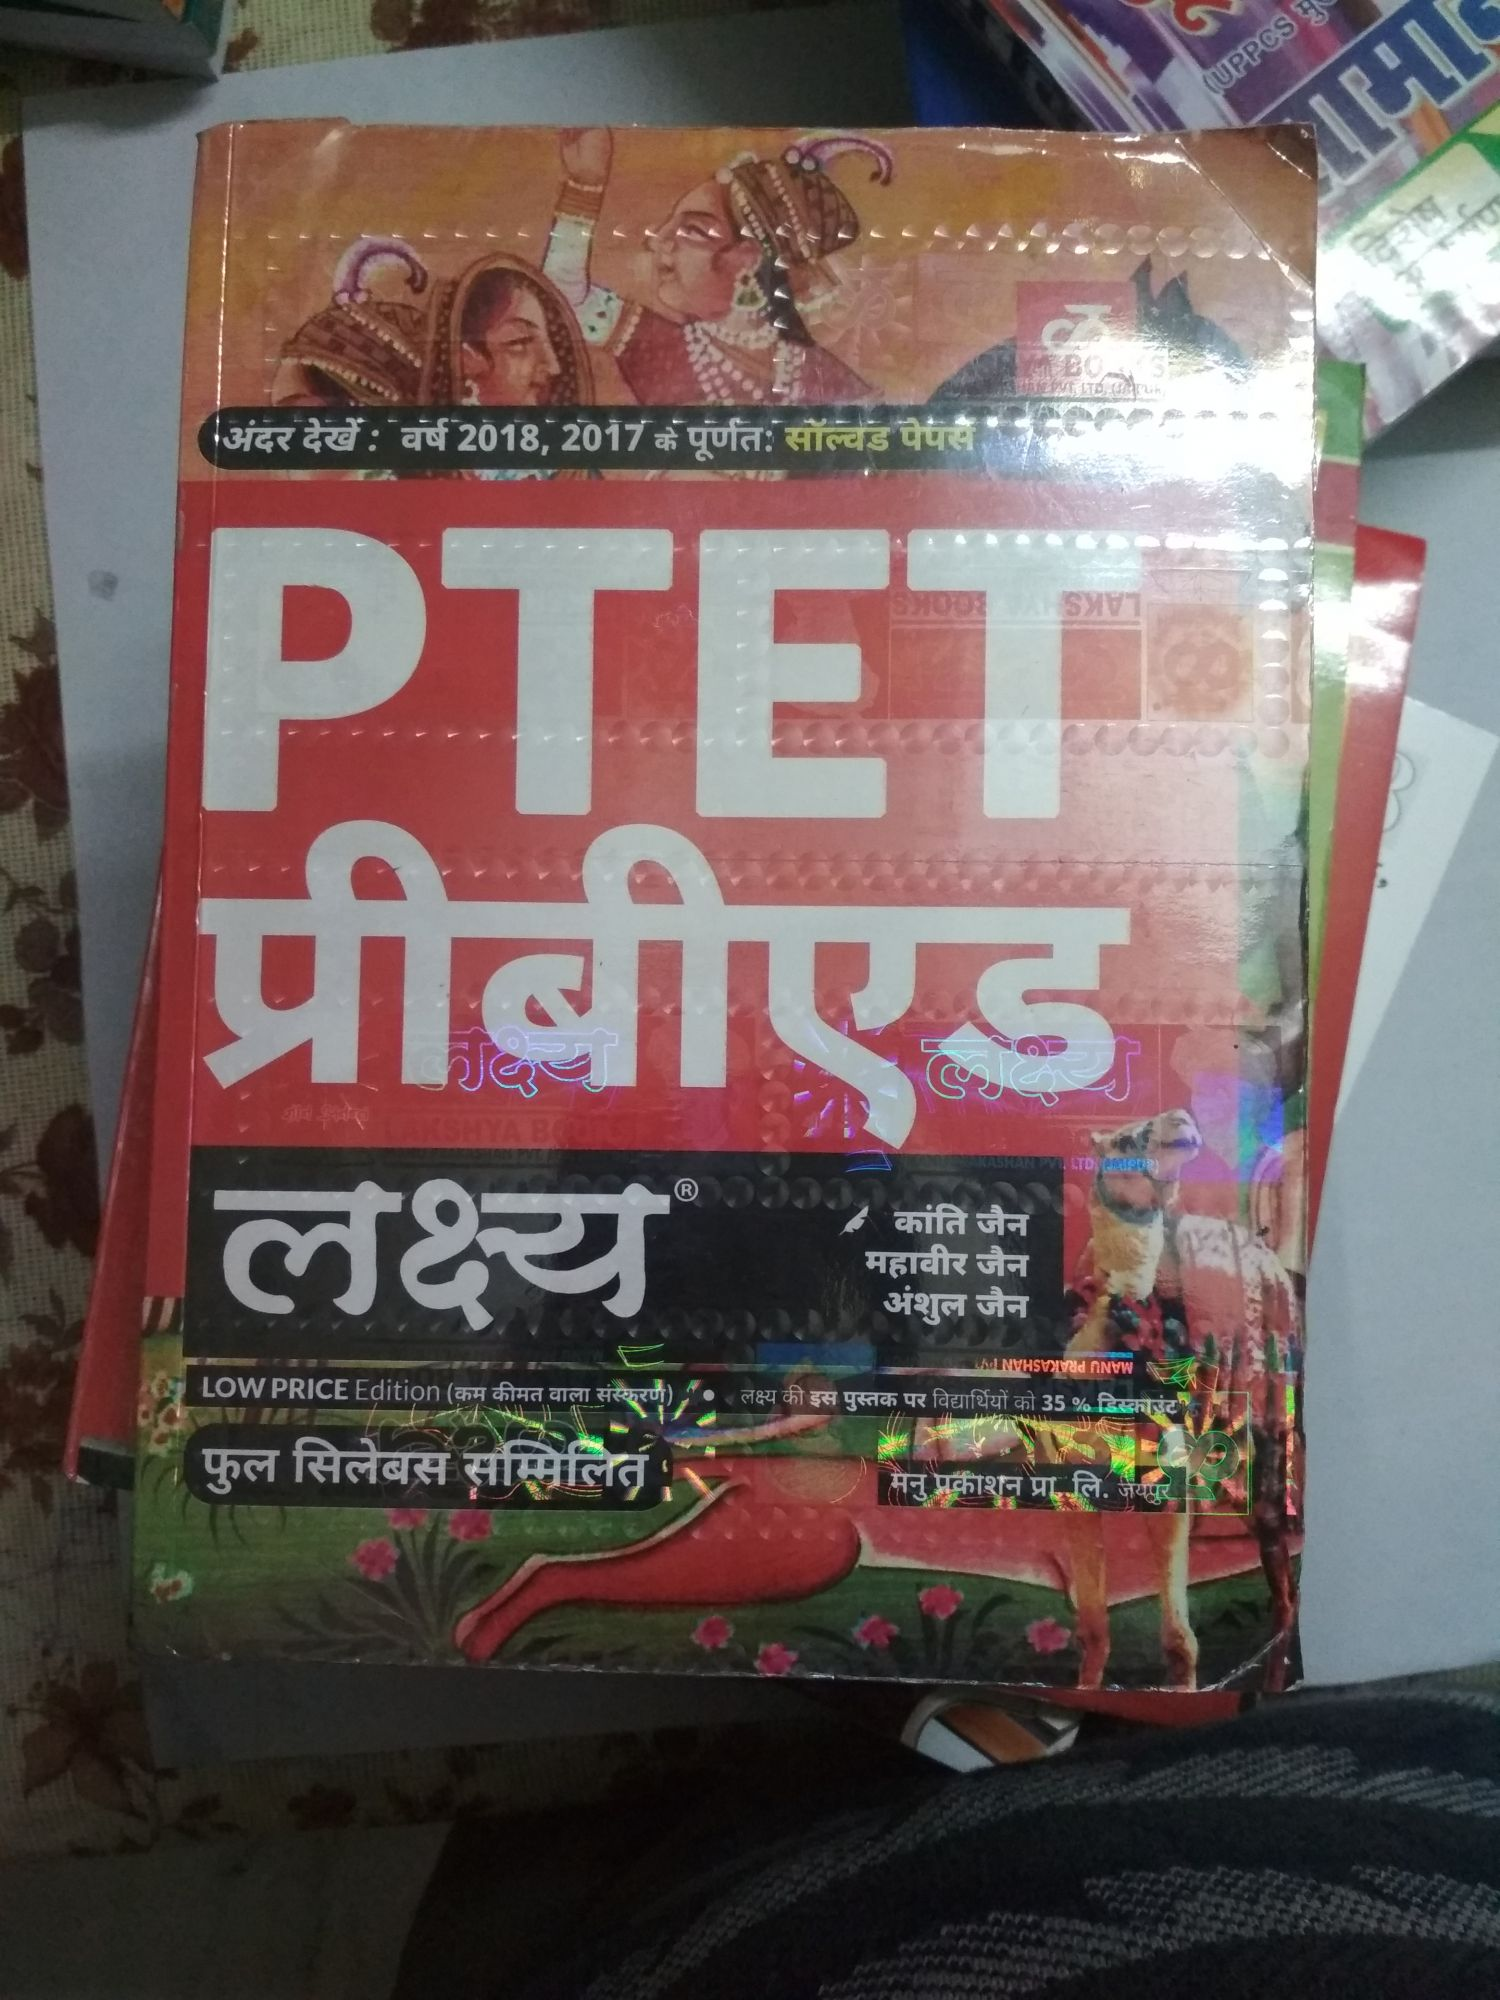 Lakshay PTET Exam. Pre.B.Ed GUIDE BOOK